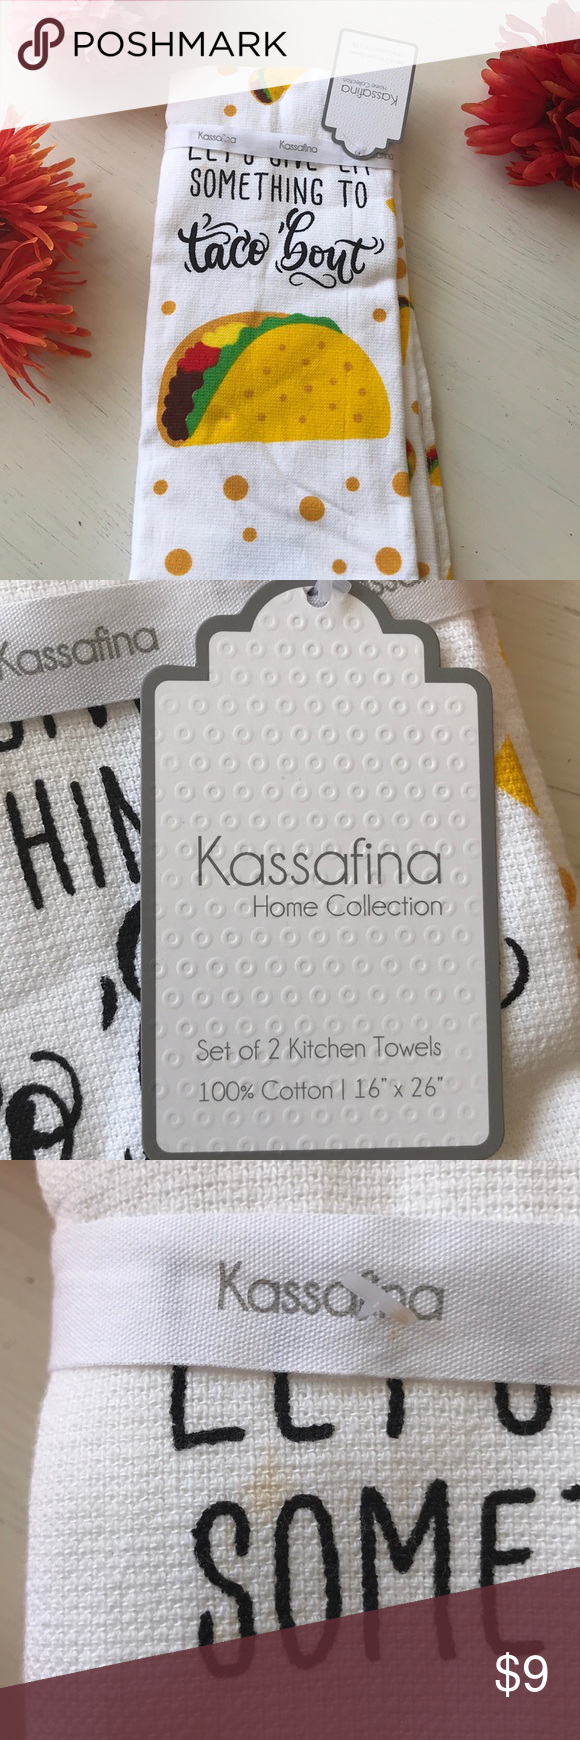 Kassafina Hand towels Set of 2 hand / kitchen towels by Kassafina  See small stain in pic Bath Hand Towels #handtowels